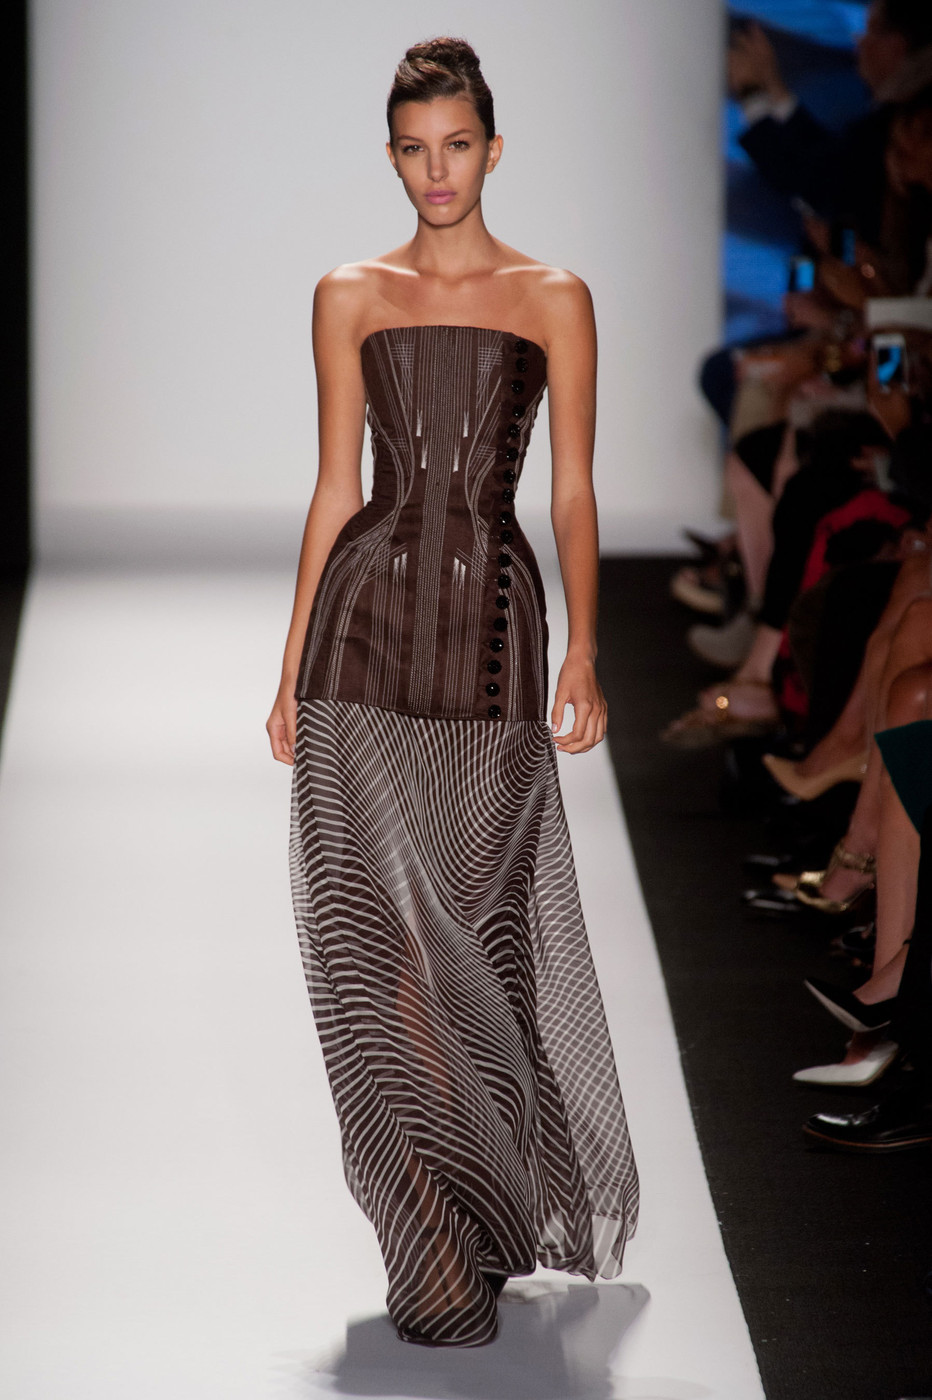 Curved lines in fashion 43